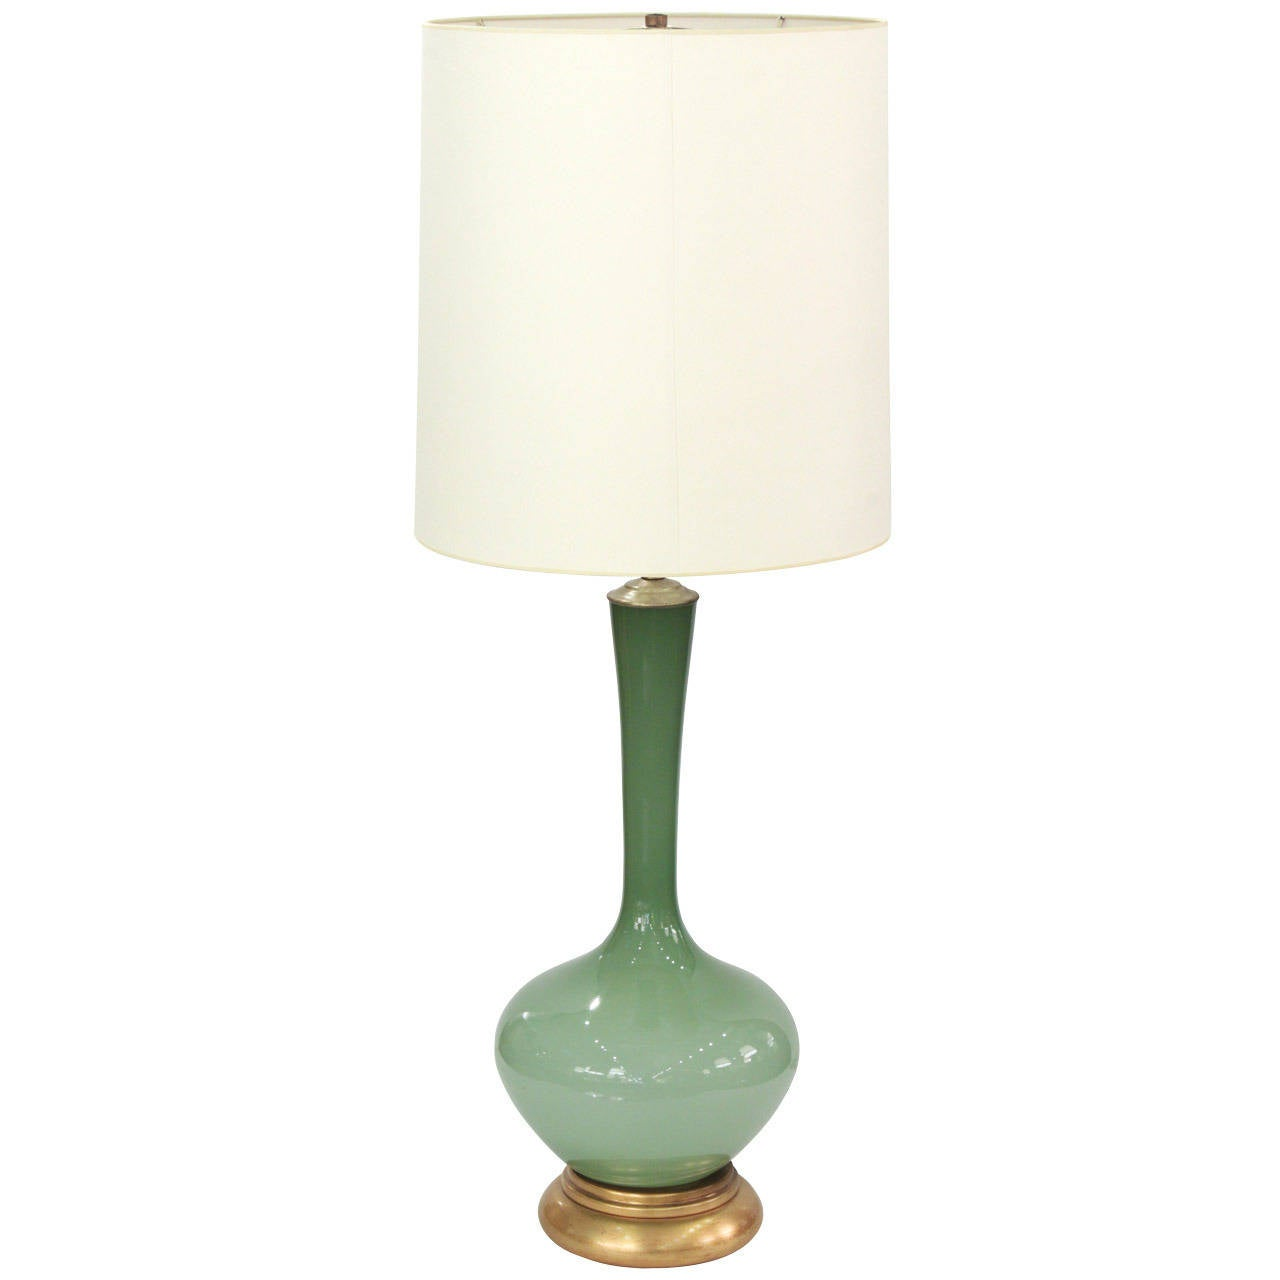 Large Swedish Handblown Green Glass Table Lamp